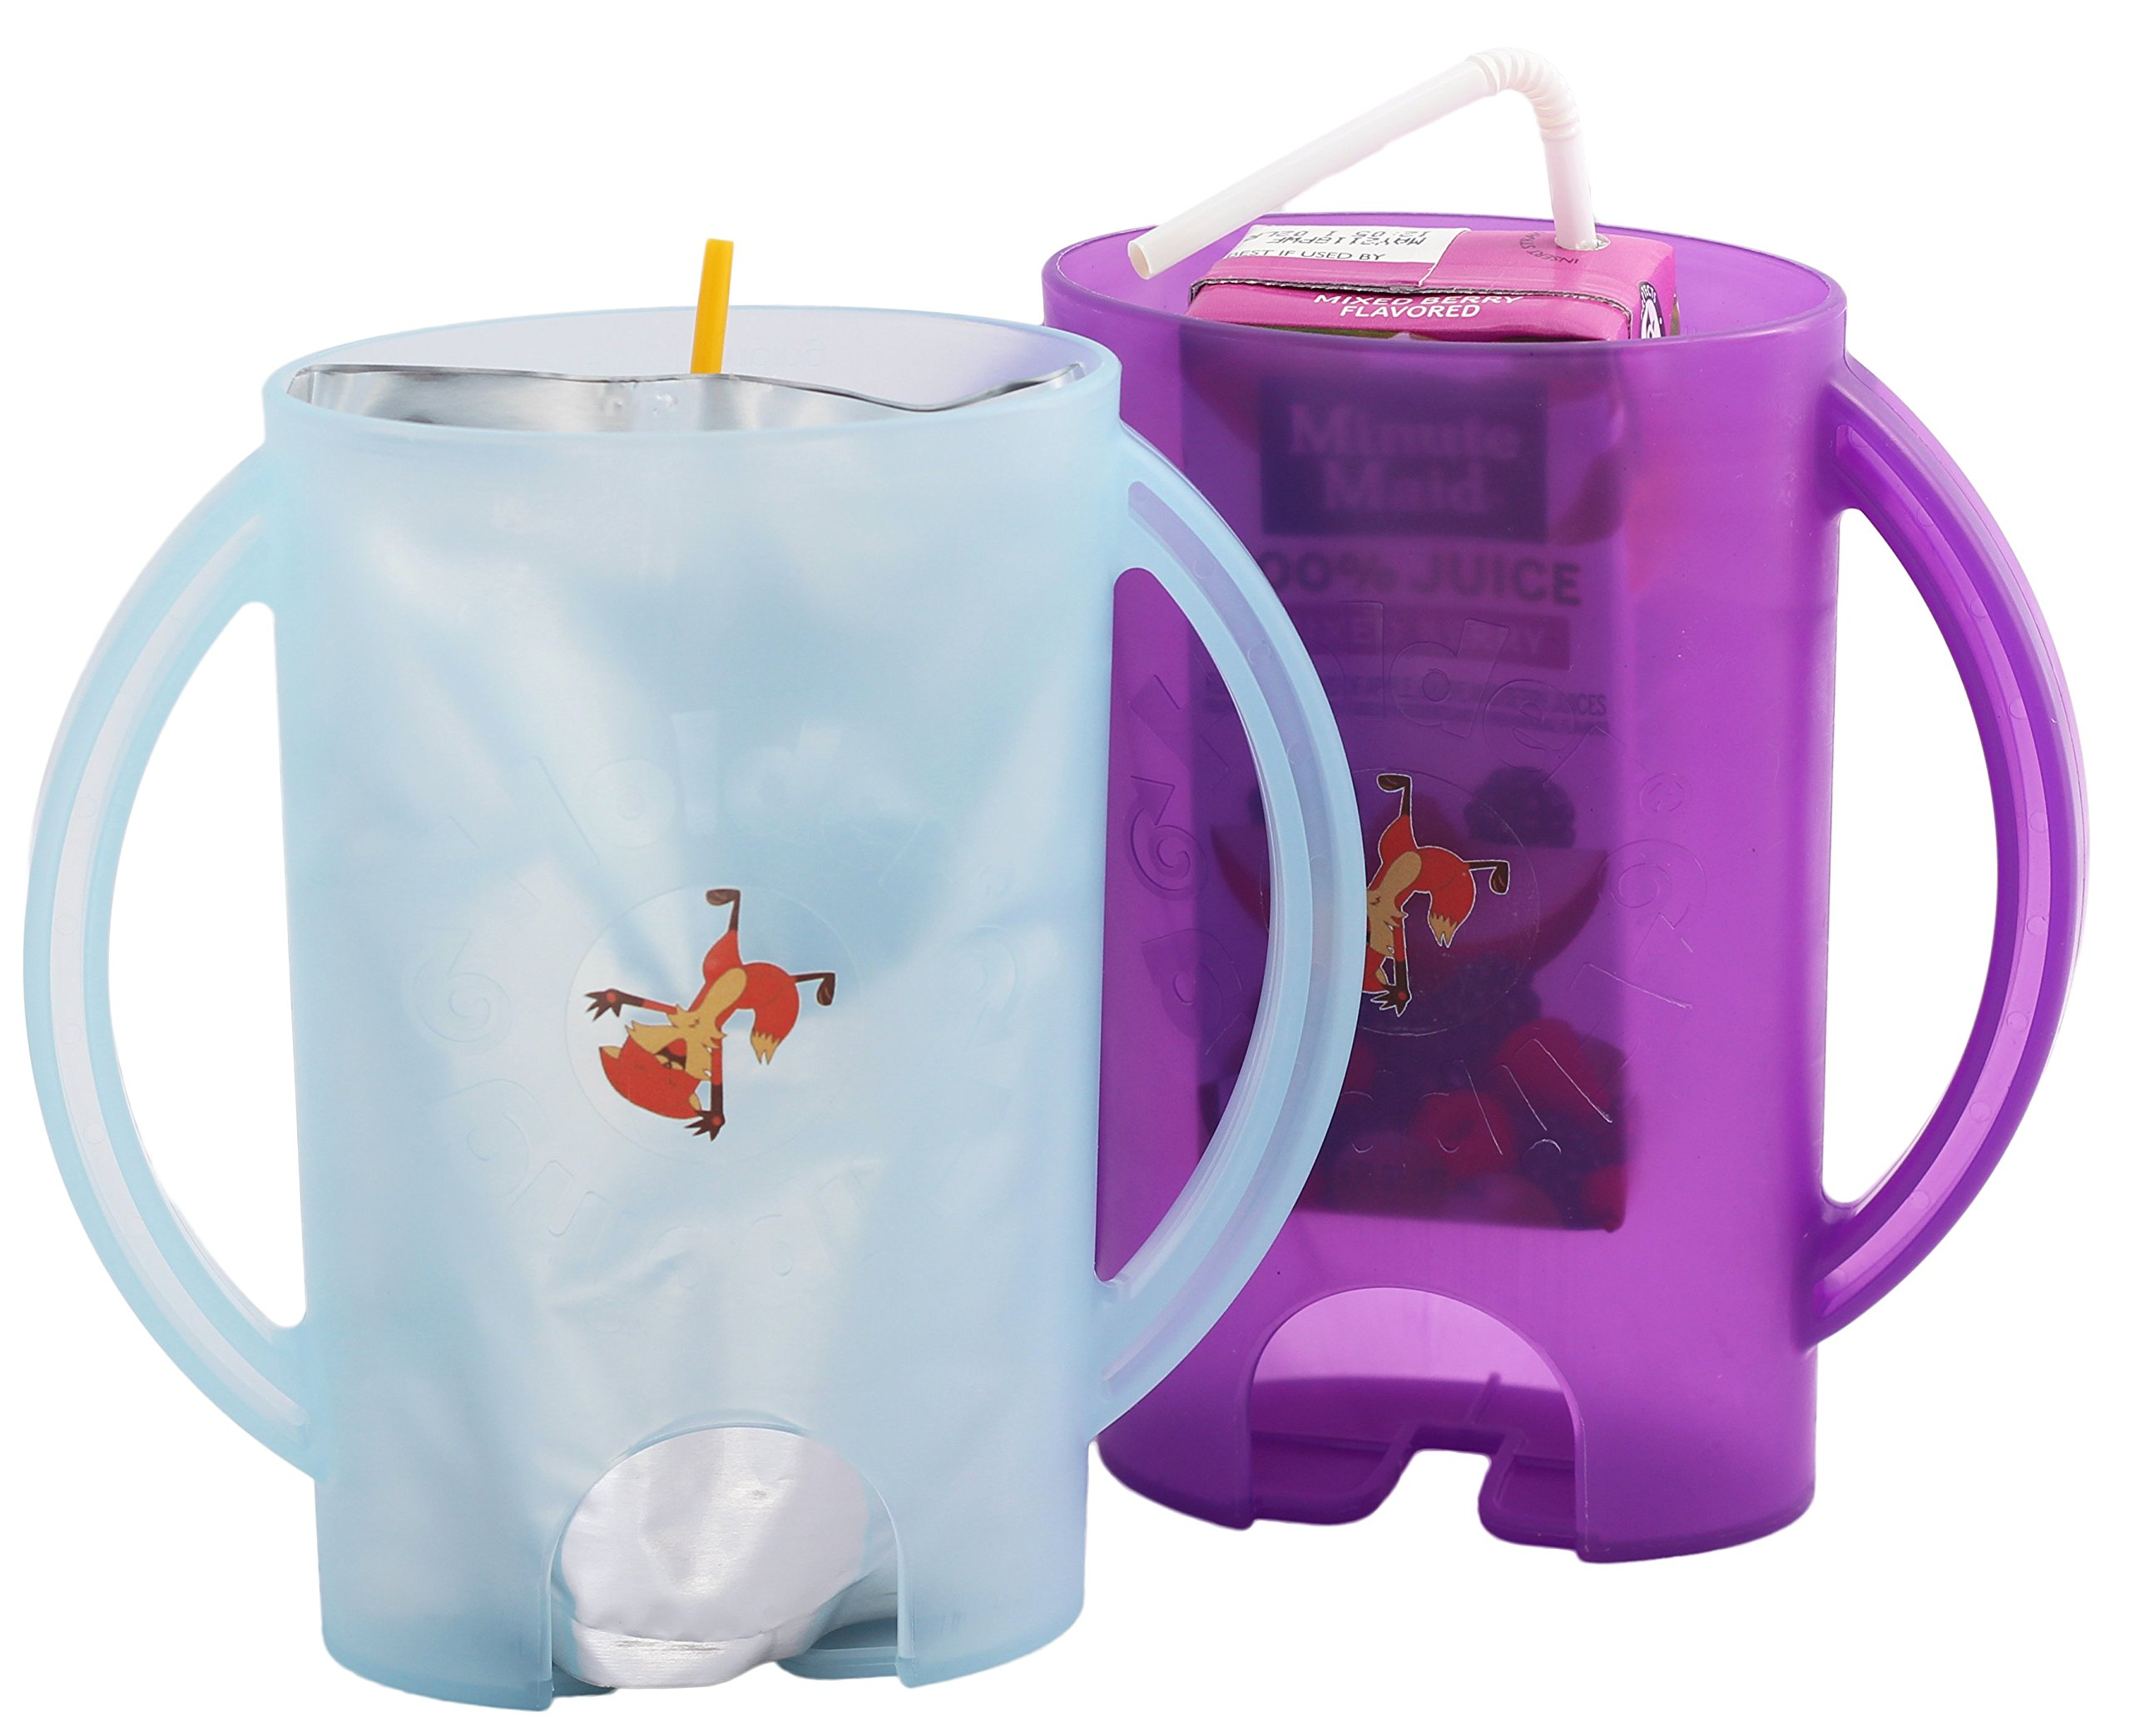 Flipping Holder, multipurpose squeeze-proof food pouch holder and juice box holder (One Blue, One Purple)